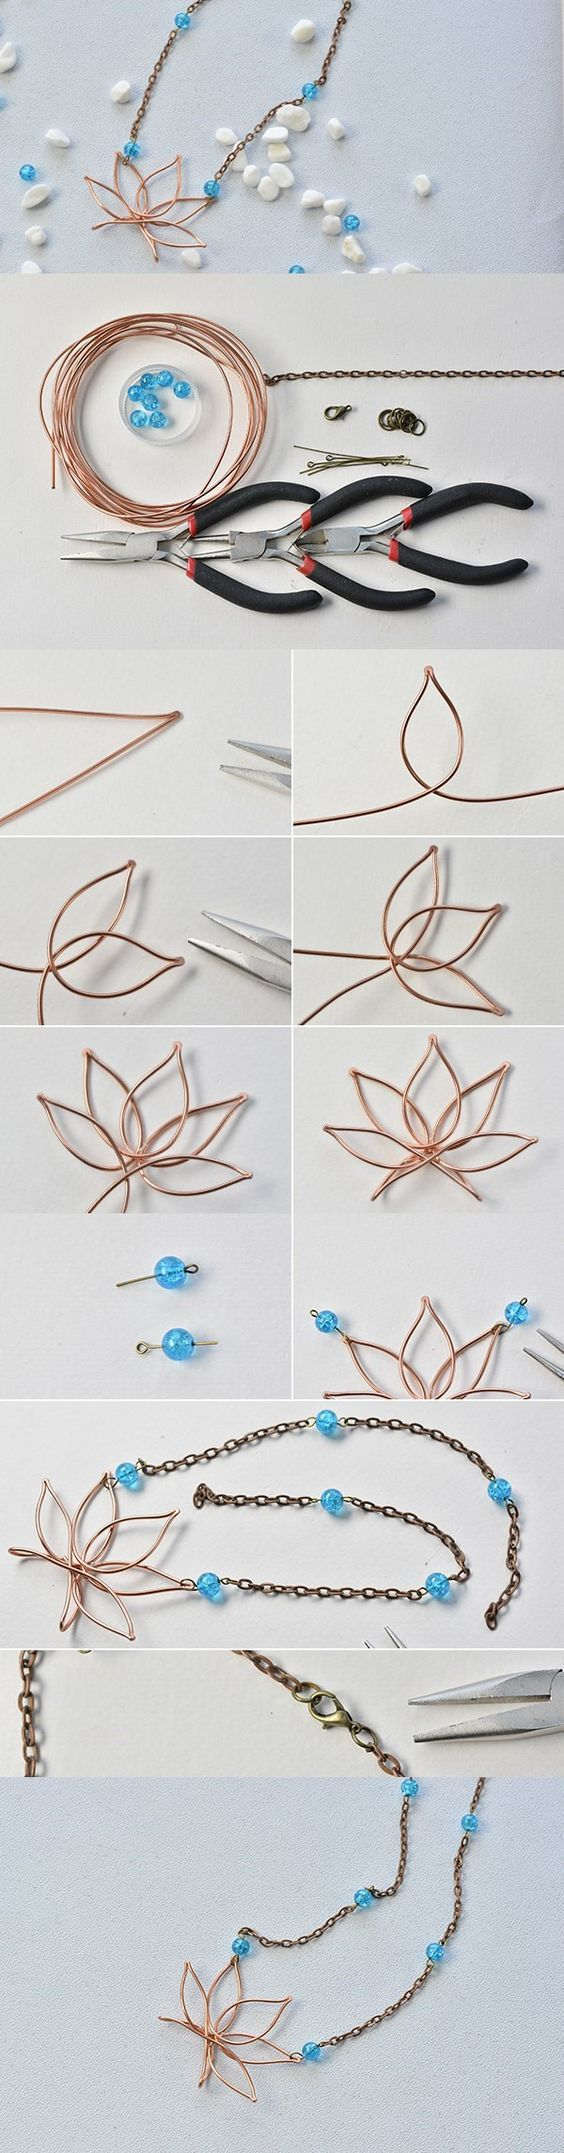 1208 best Jewelry images on Pinterest | Necklaces, Diy jewelry and ...